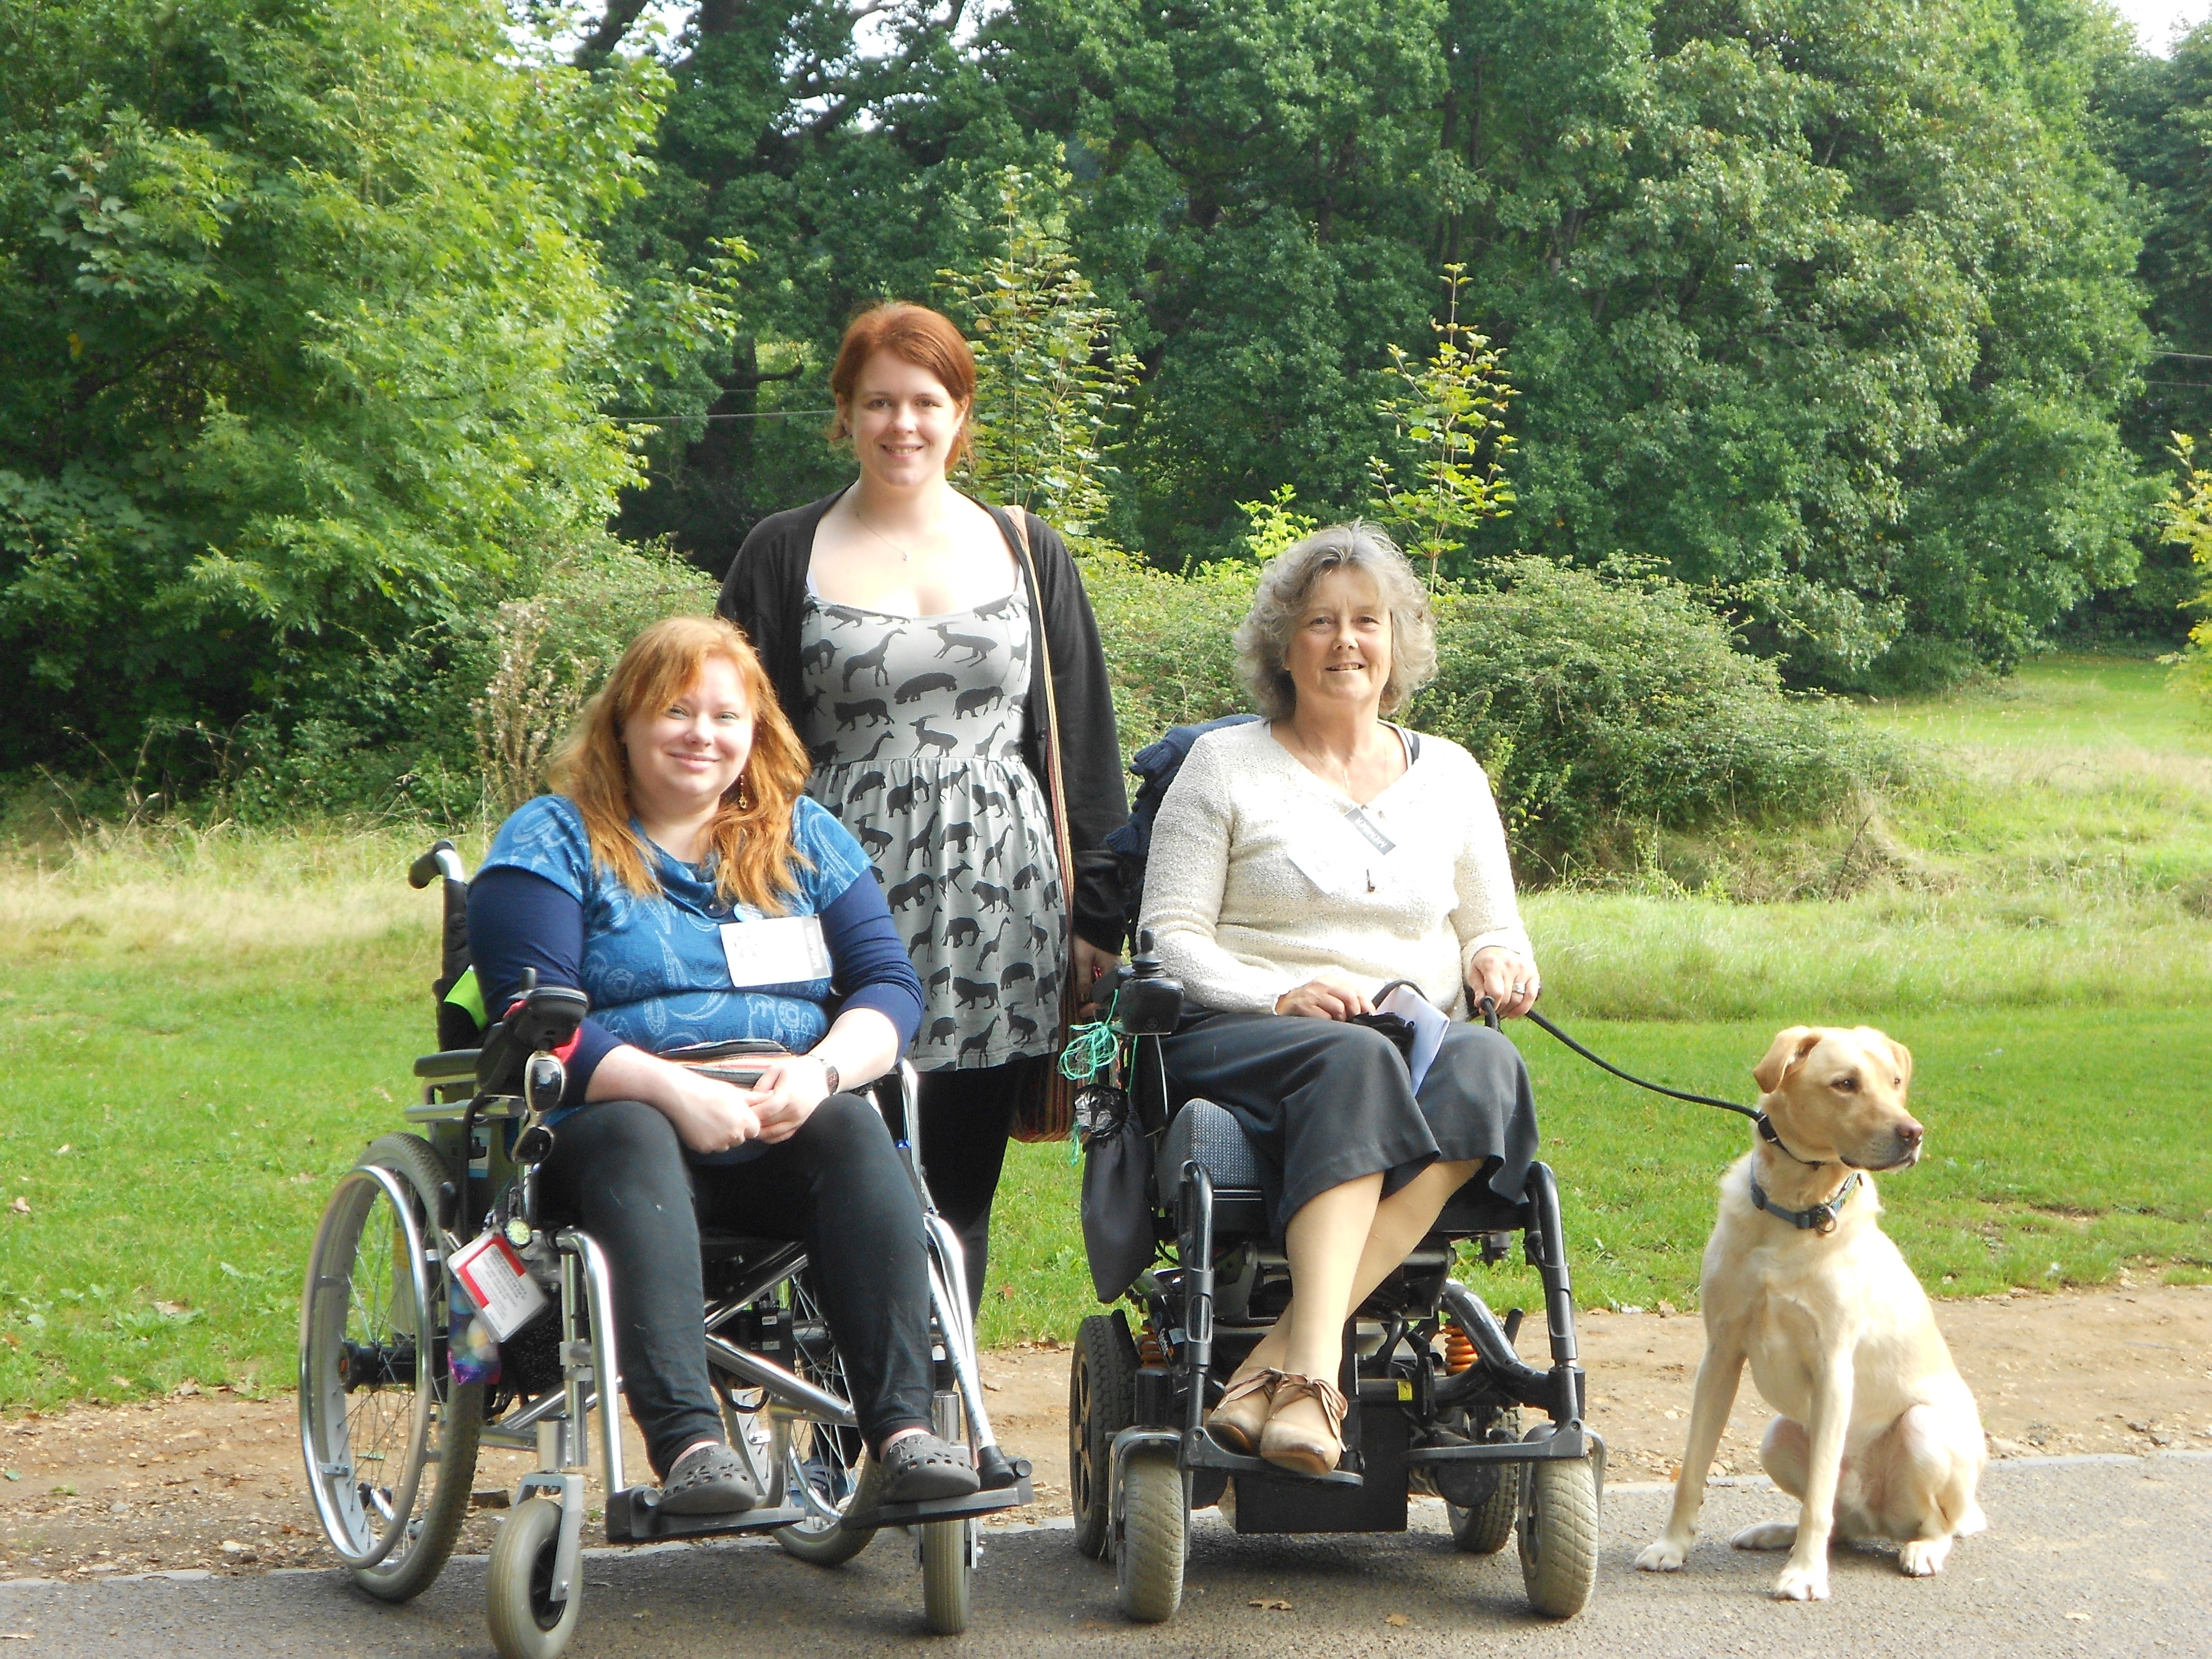 Disability charity raising money to train dogs